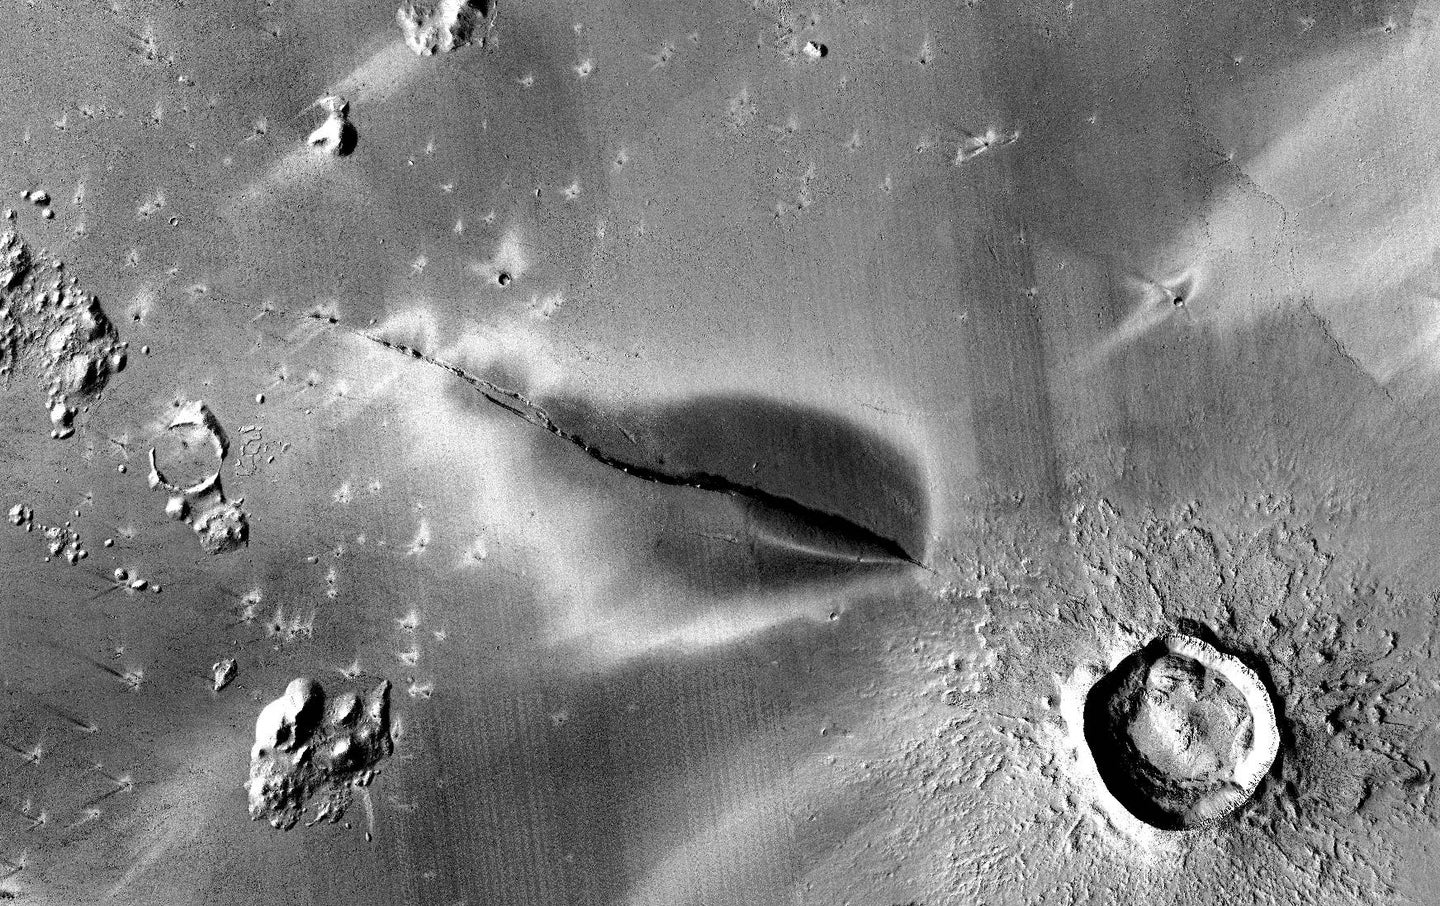 A fissure in the Cerberus Fossae formation on Mars.